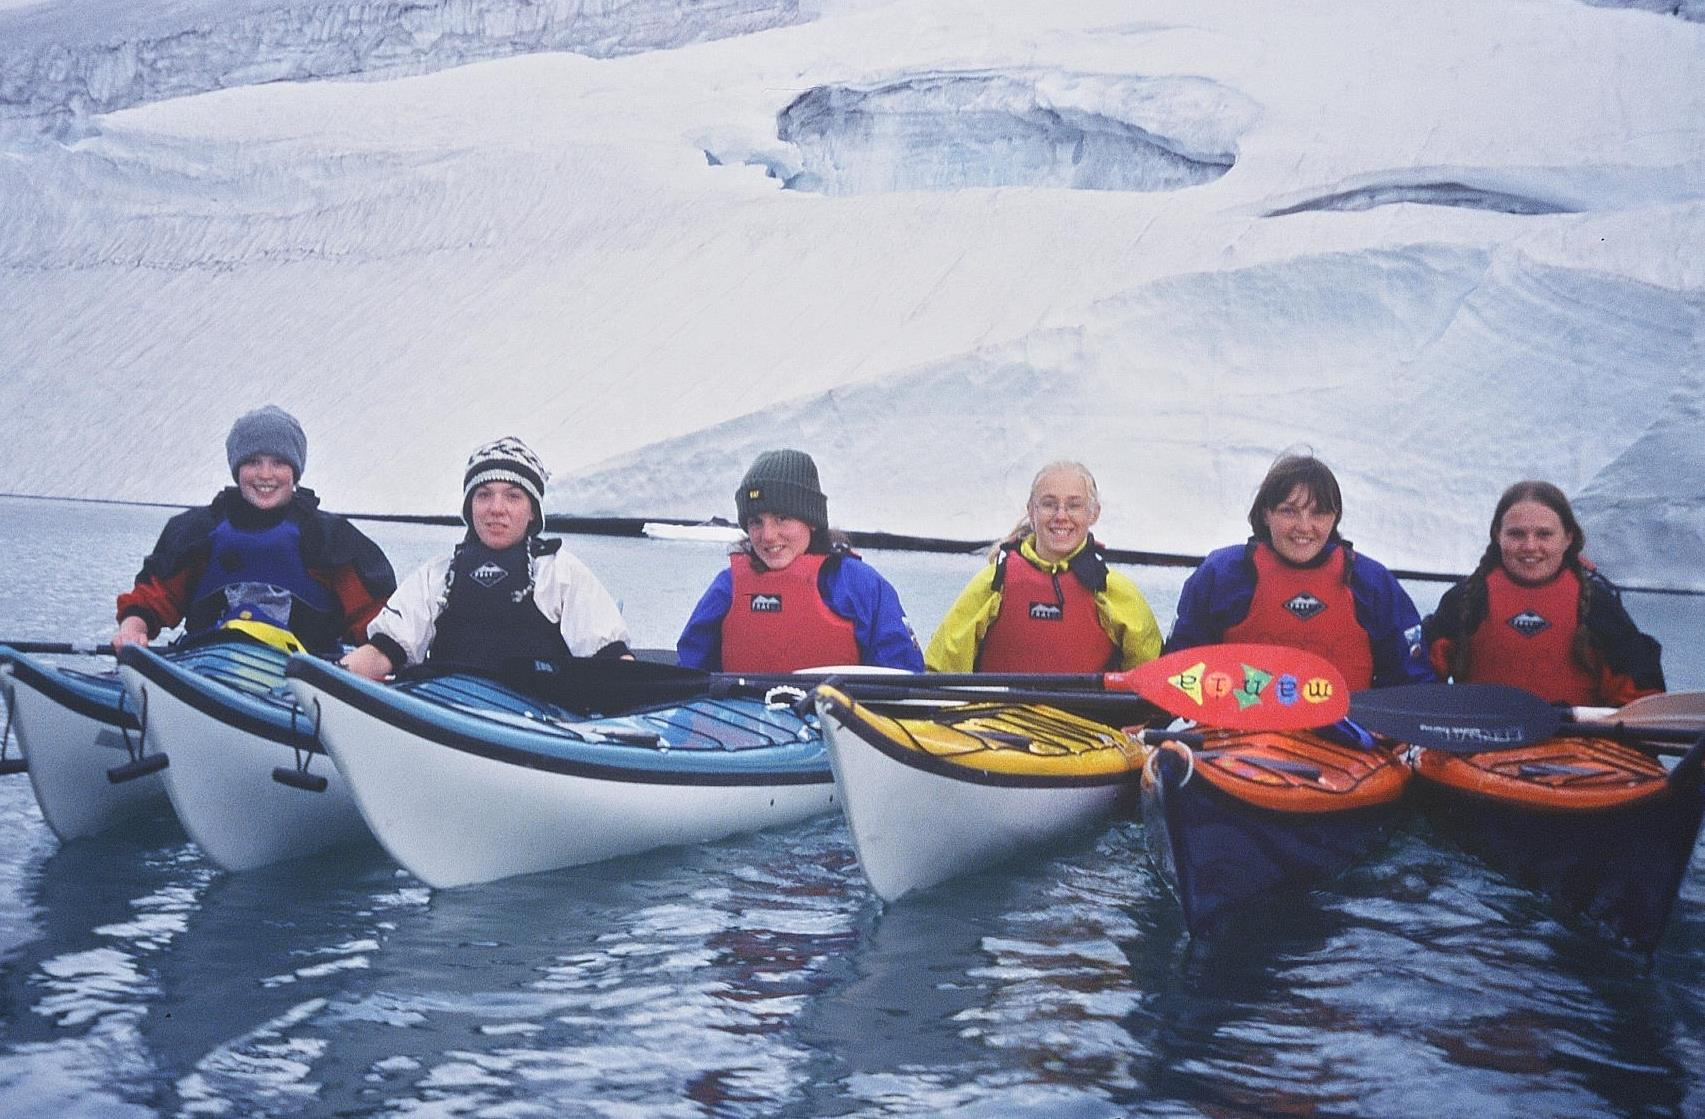 Youth group in sea kayaks on water in Norway 2003